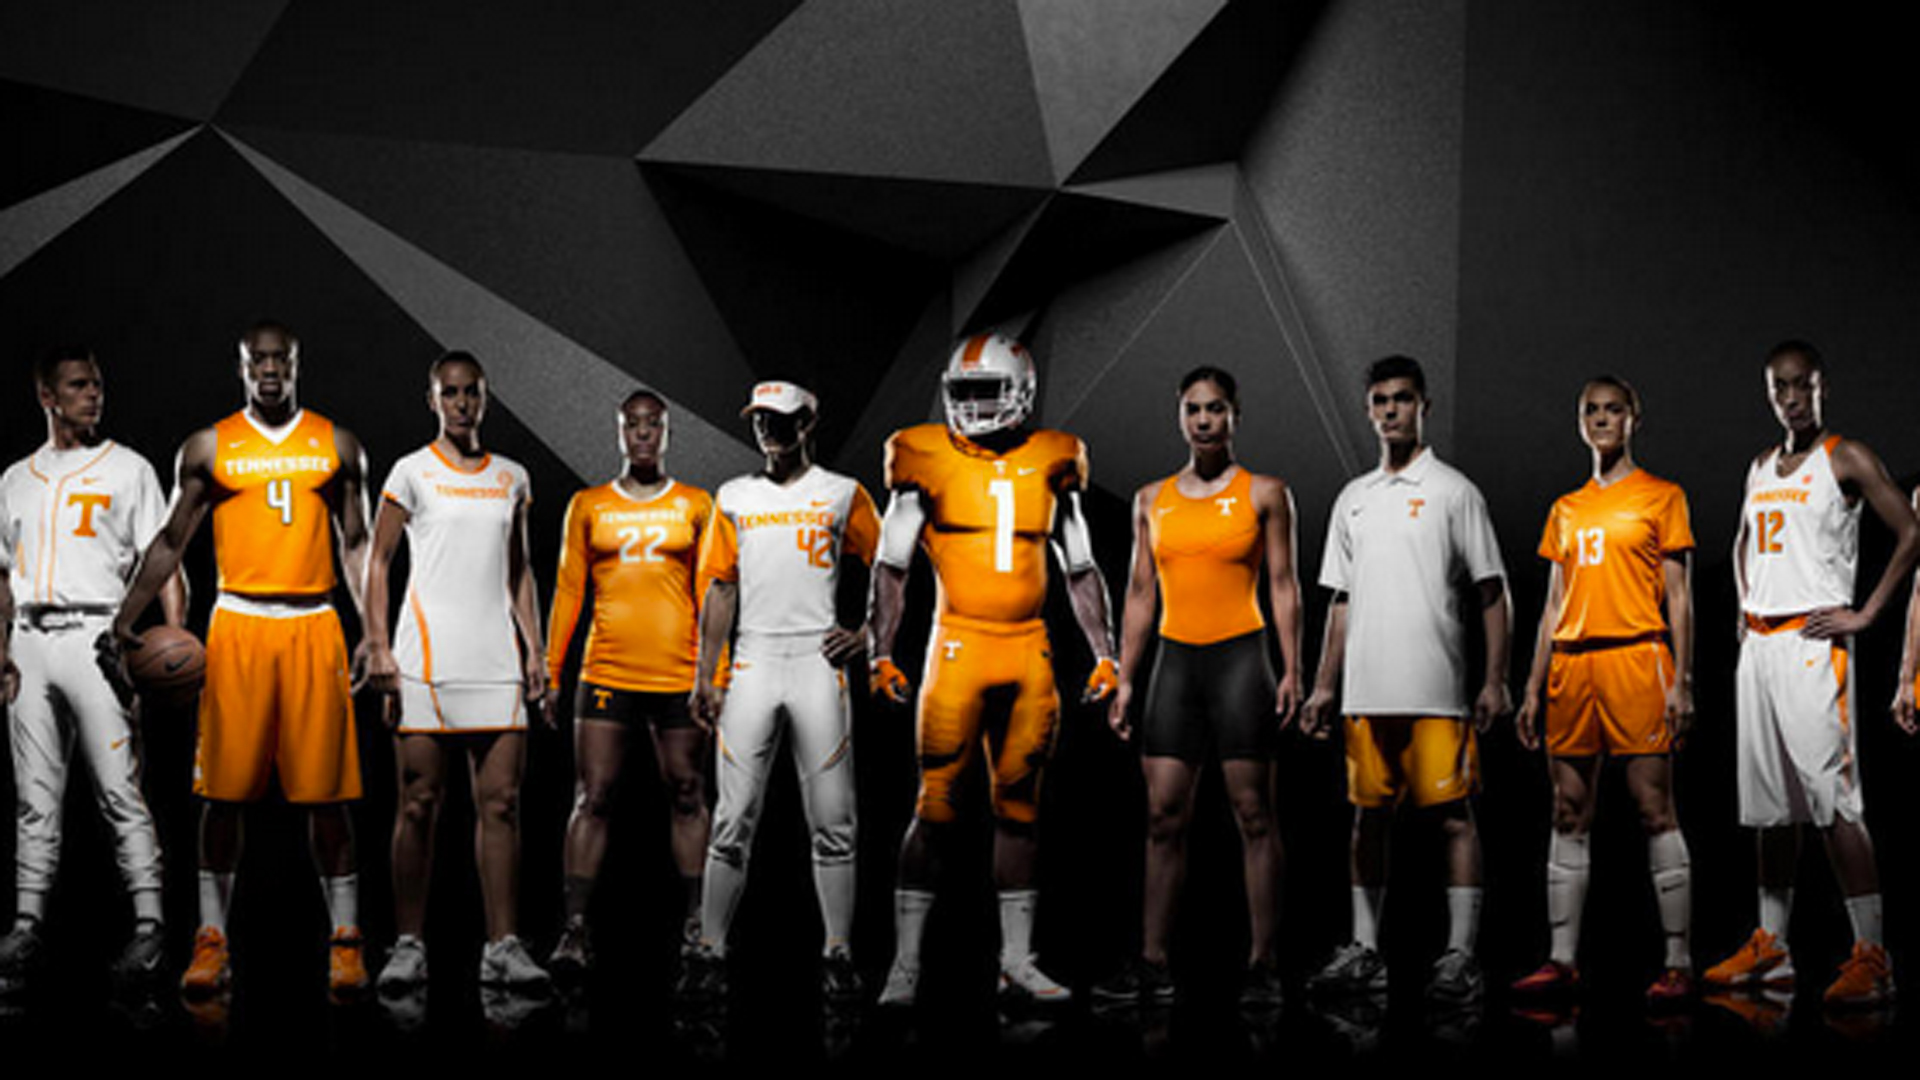 Tennessee unveils new Nike uniforms for all sports